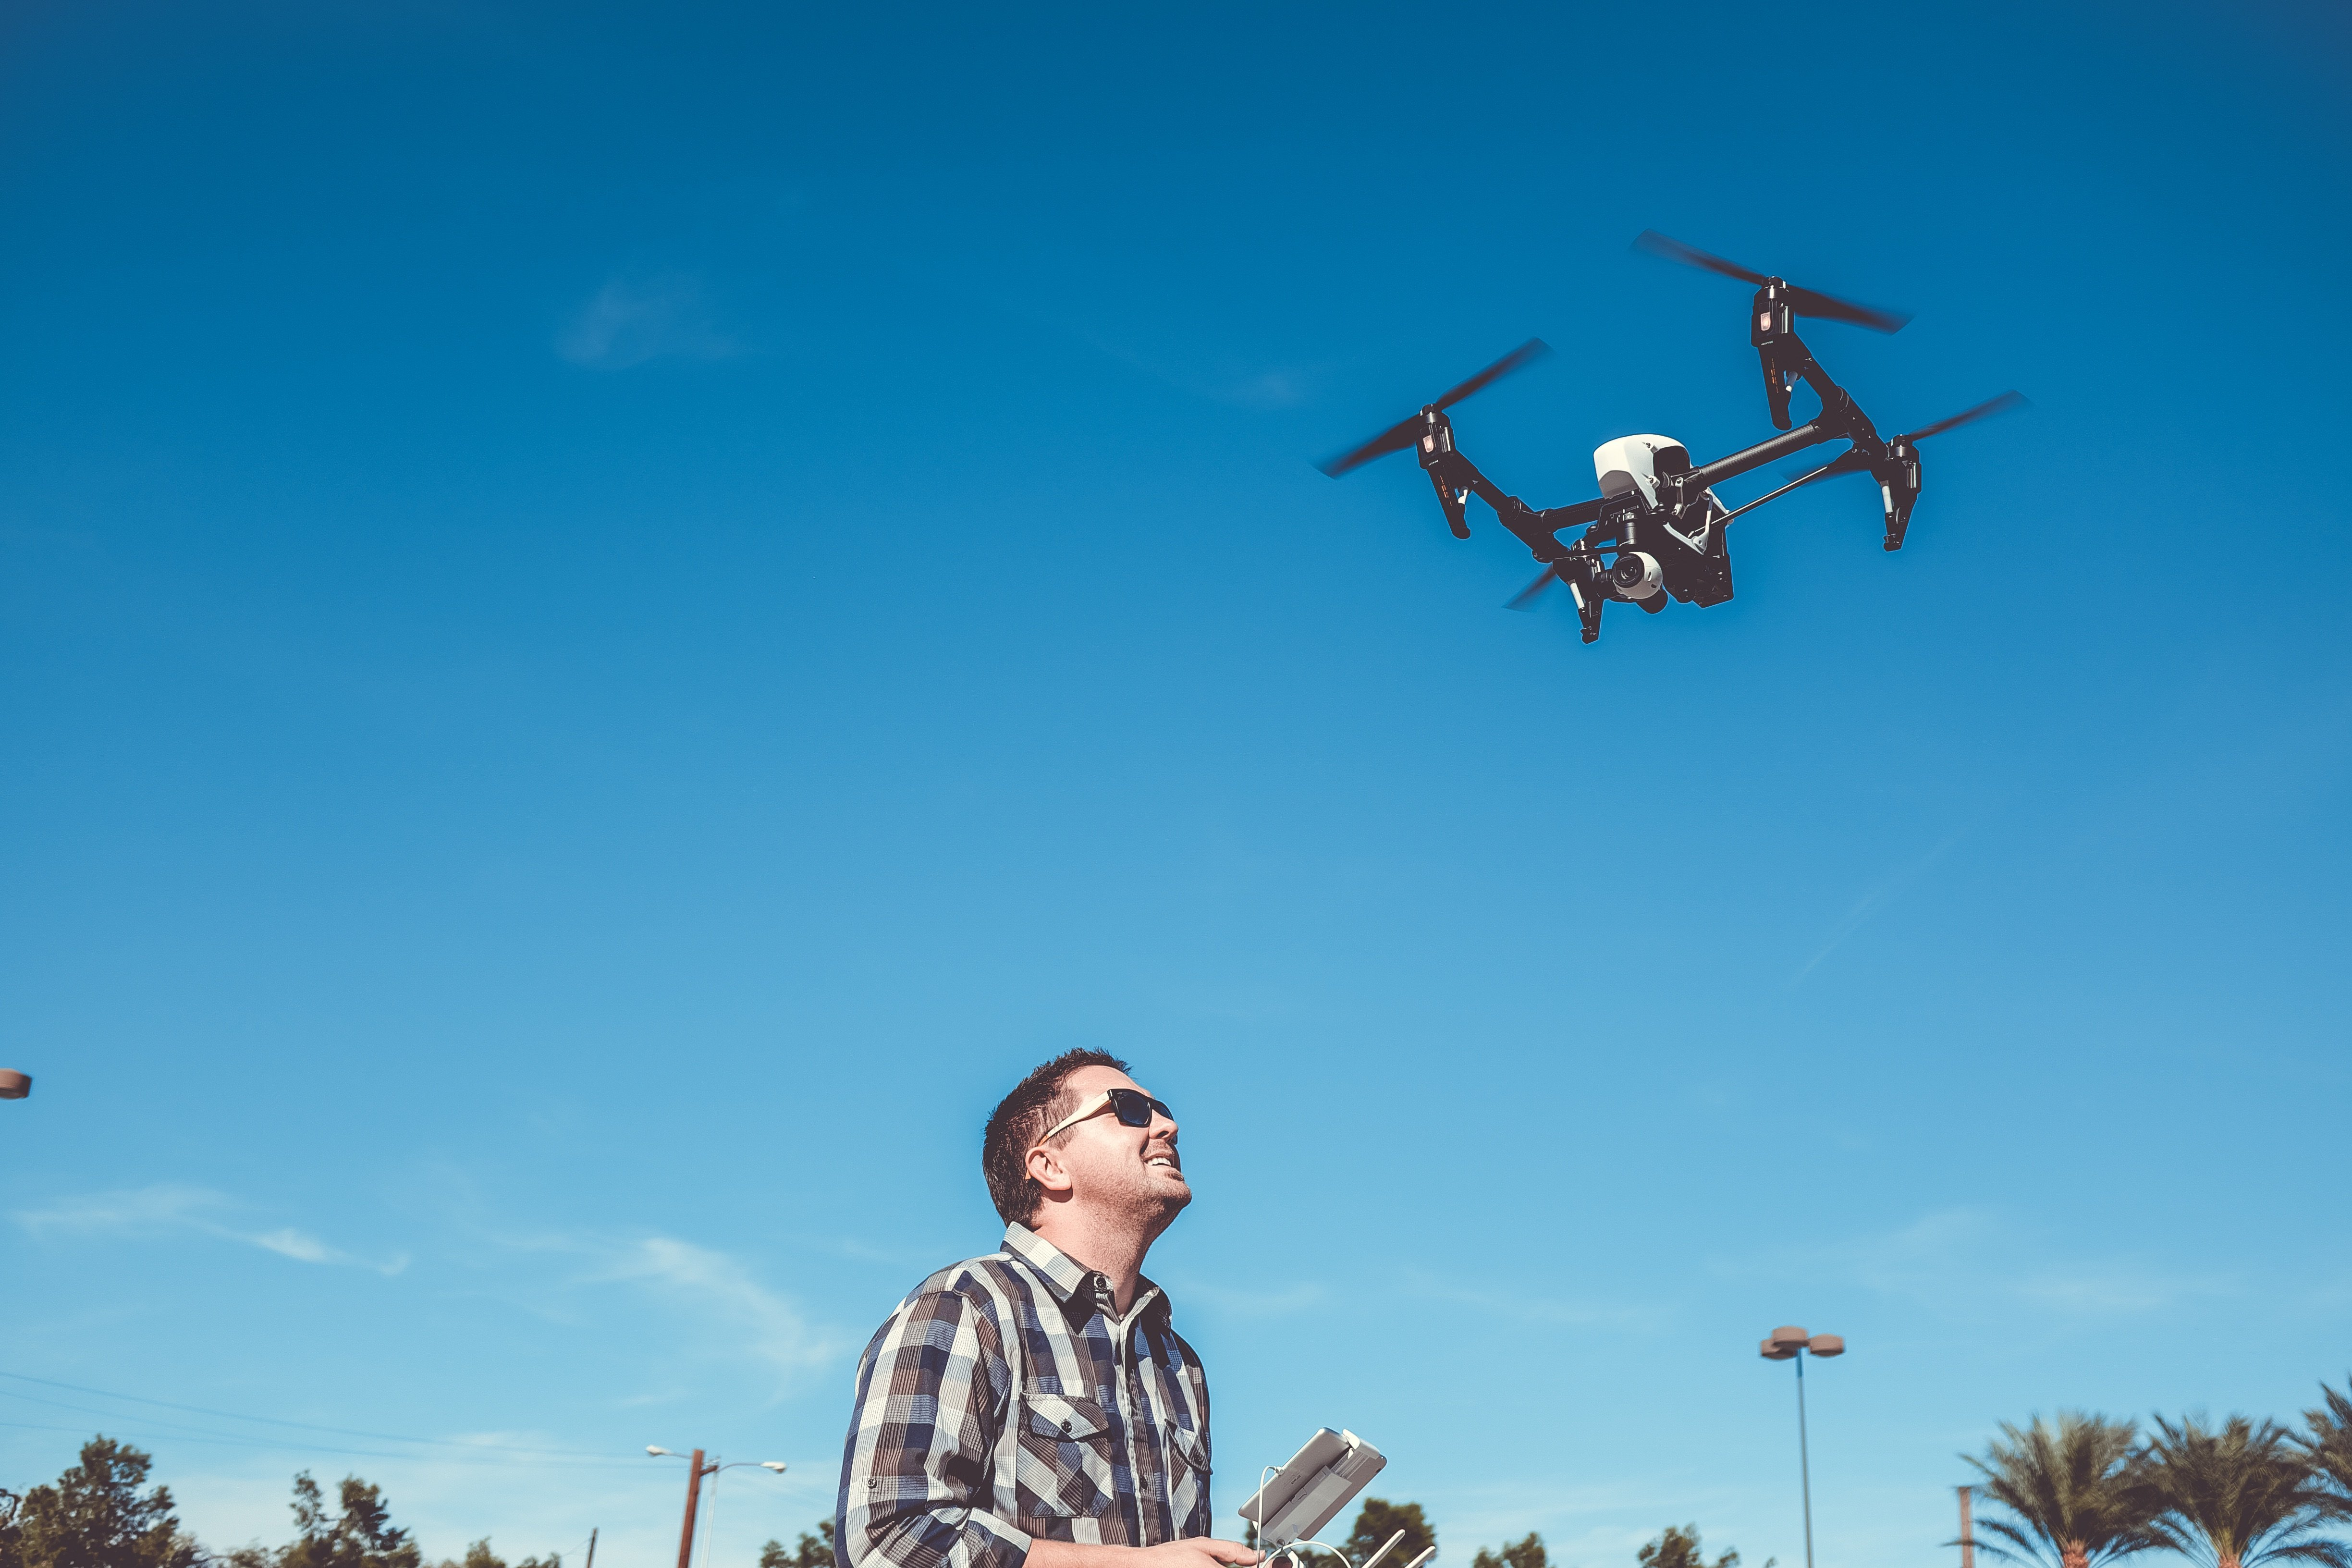 Commercial-drone-services-New-England.jpg